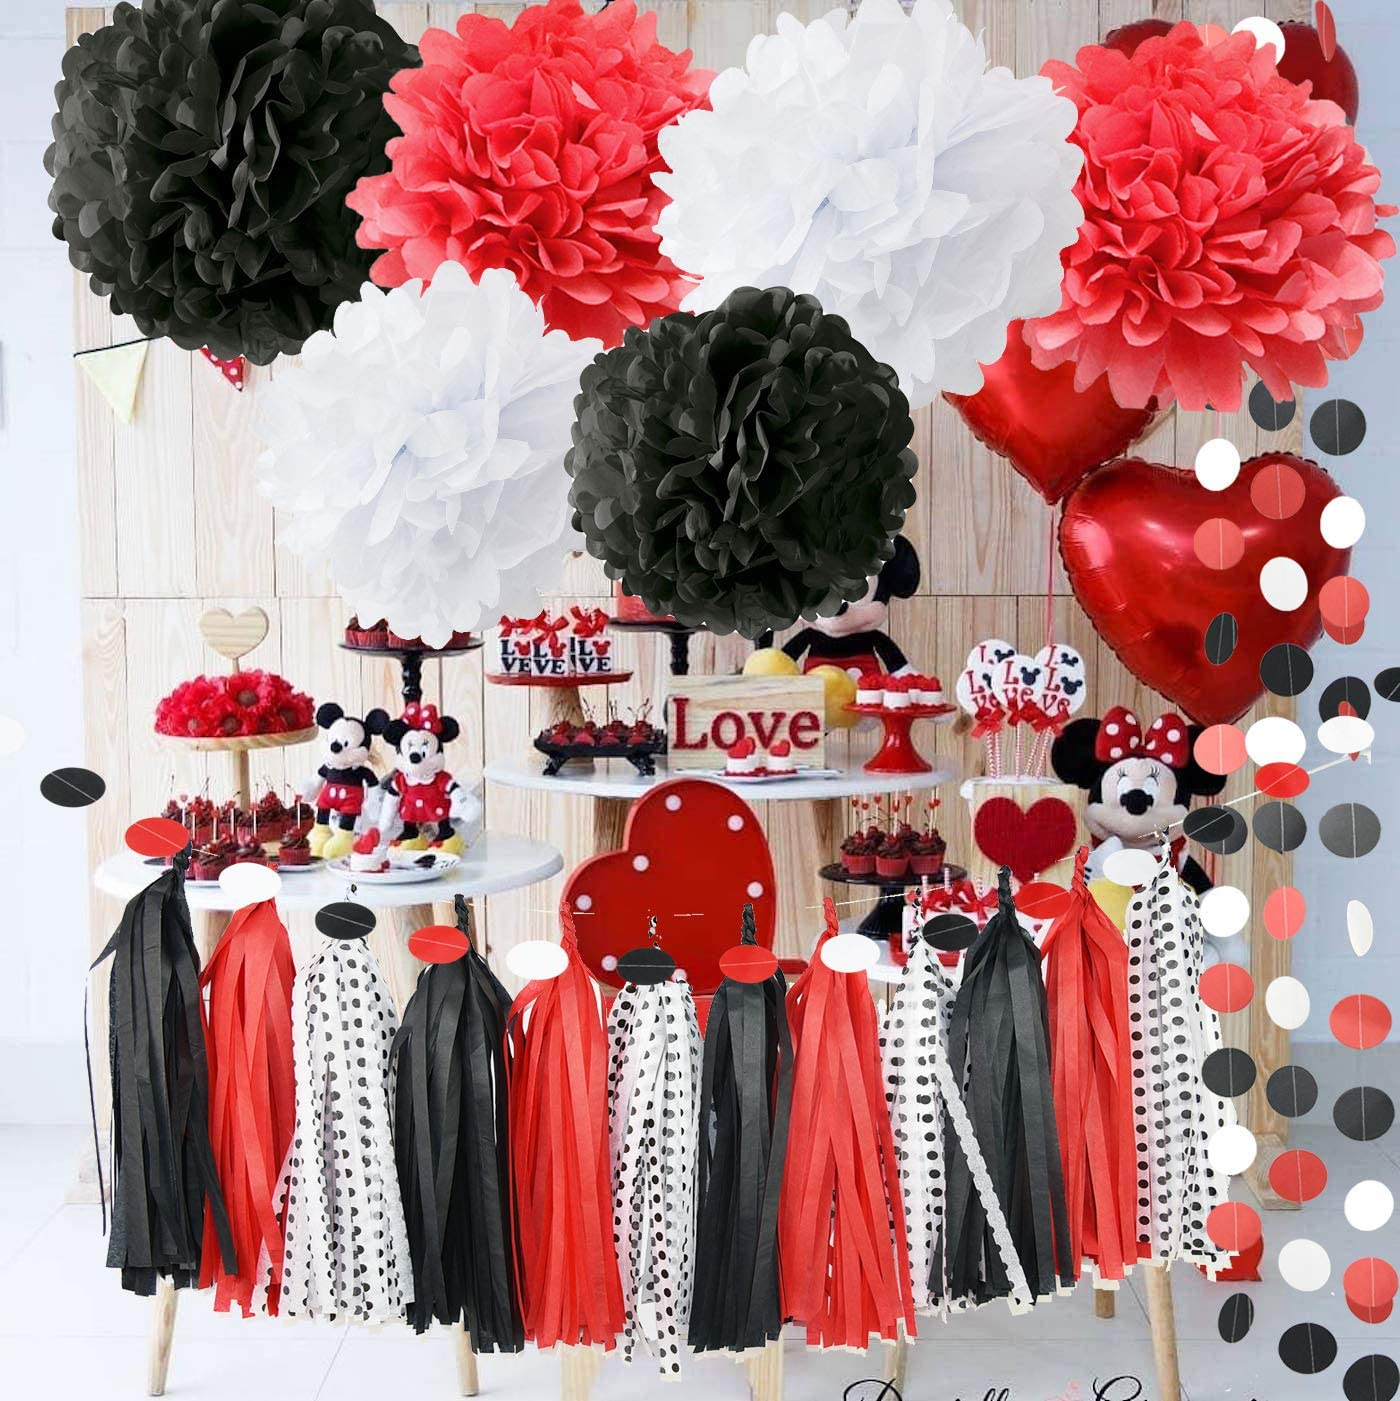 Amazon Com 2021 Graduation Decorations Party Supplies Red And Black Minnie Mouse White Baby Ladybug Birthday First Tissue Paper Pom Home Kitchen